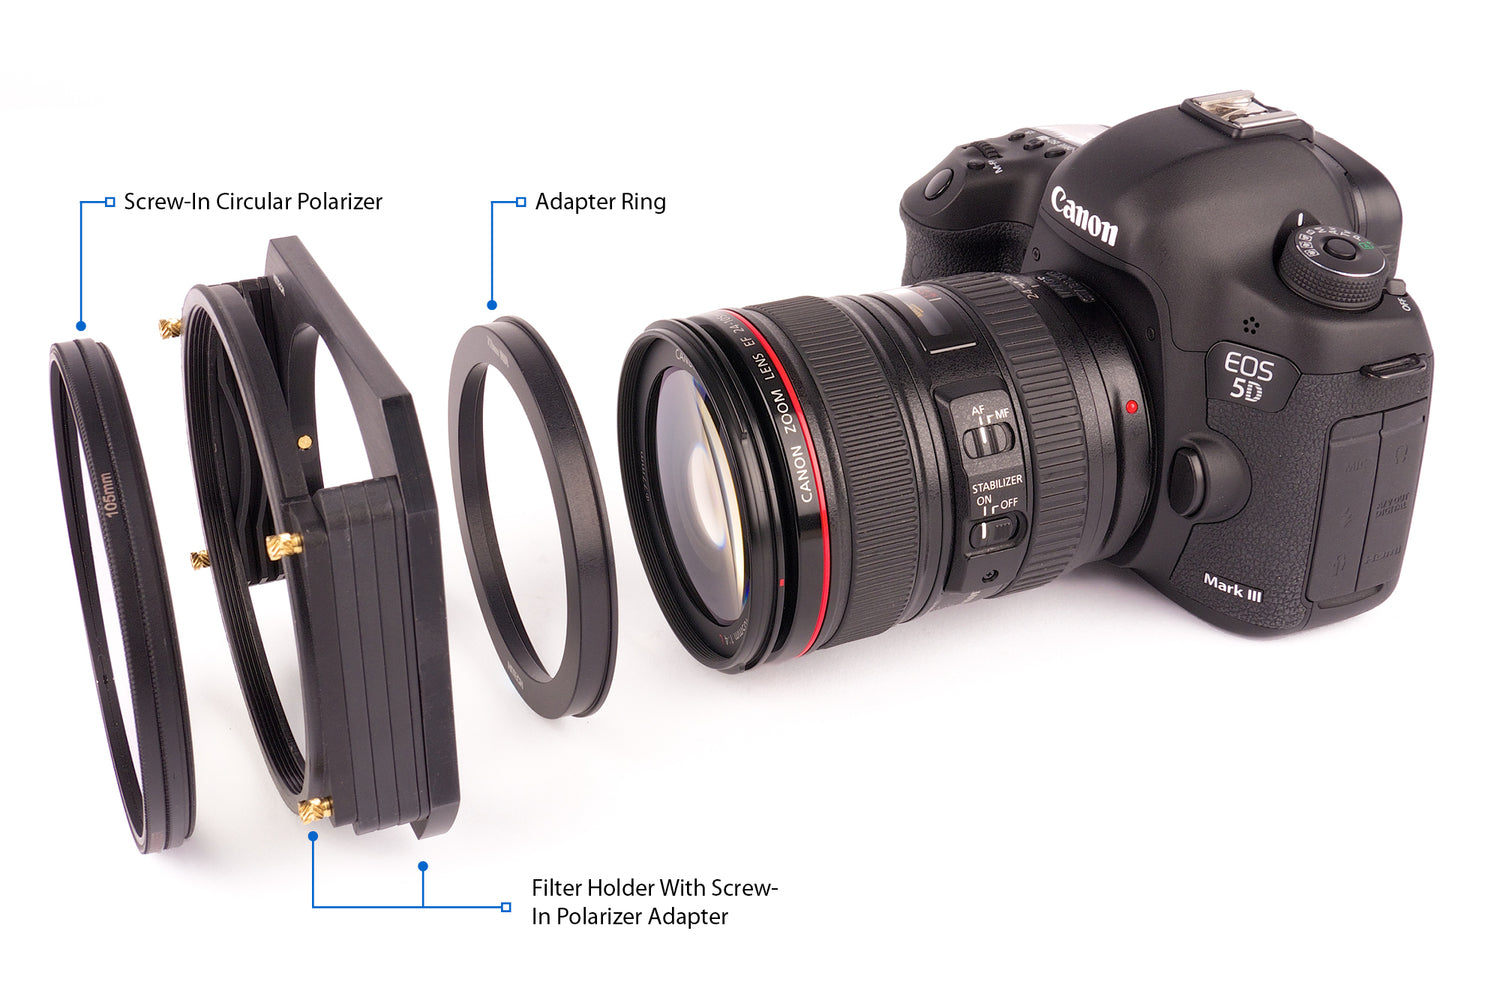 An image of the different components of the Formatt Hitech aluminum filter holder system. Labeled are a screw in polarizer filter, the filter holder itself including the polarizer adaptor plate, the lens mounting adaptor ring, and a DSLR stle camera and lens for example.